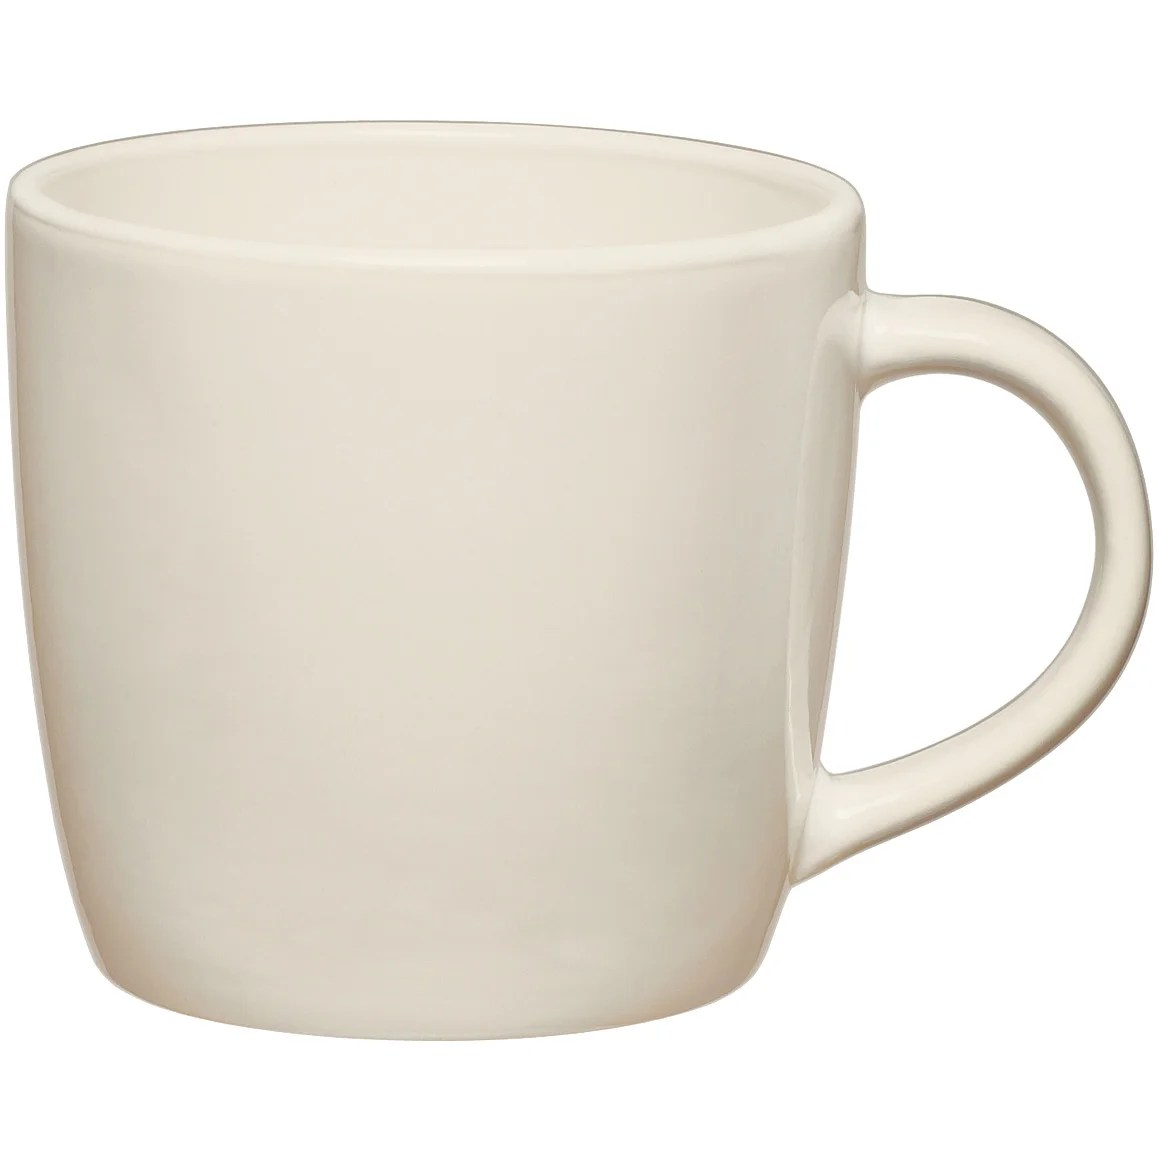 Mug A Cafe Cafe Mug 12 Oz White